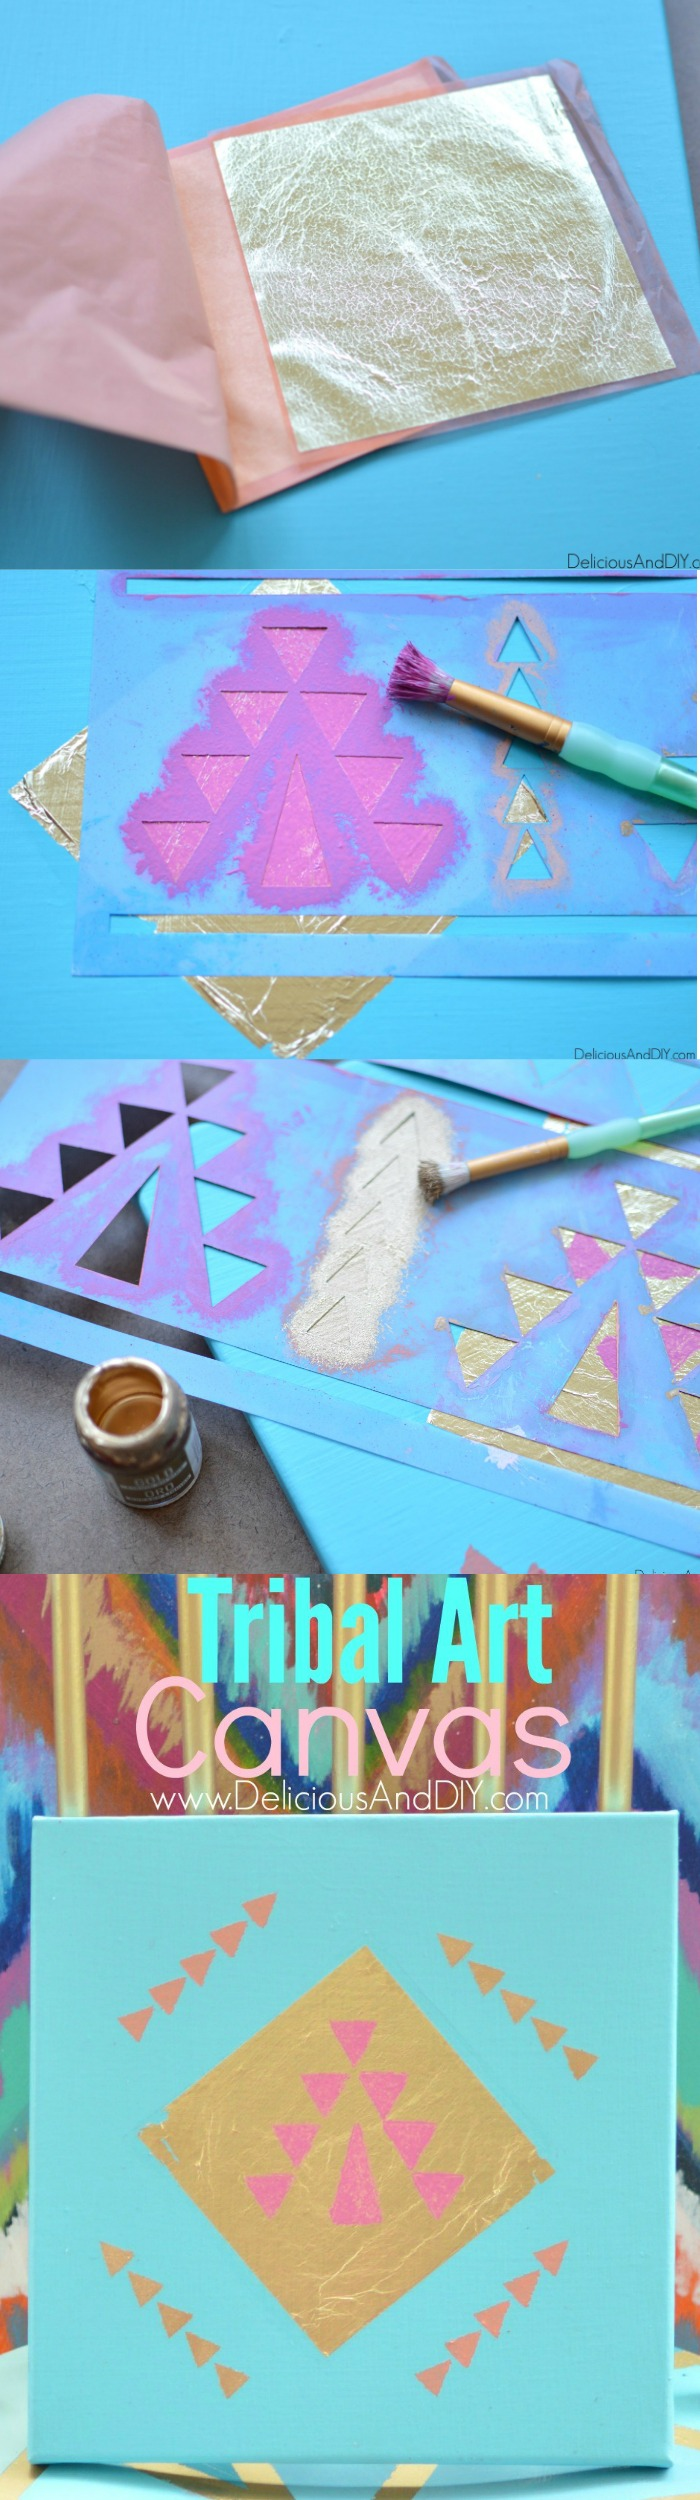 DIY Tribal Art Canvas made using Gold Leaf and a gorgeous Aztec Stencil| Home Decor| Wall Art Ideas| Gallery Wall Ideas| Tribal Art| Handpainted Canvas| Stenciled Art